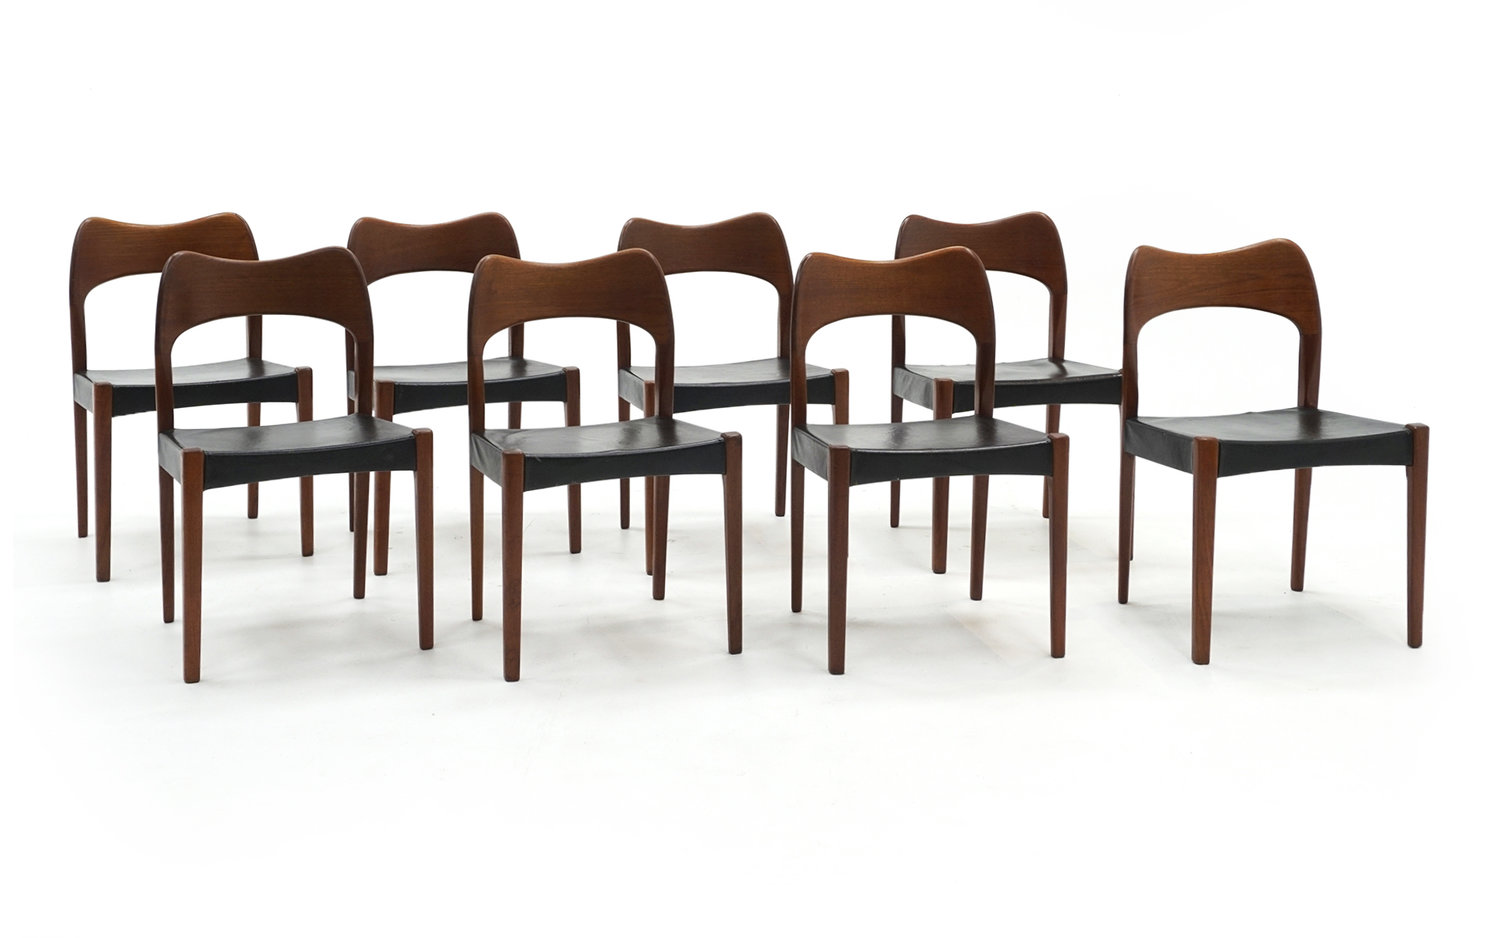 Astounding Eight Teak With Black Leather Dining Chairs By Niels Otto Moller Retro Inferno Creativecarmelina Interior Chair Design Creativecarmelinacom